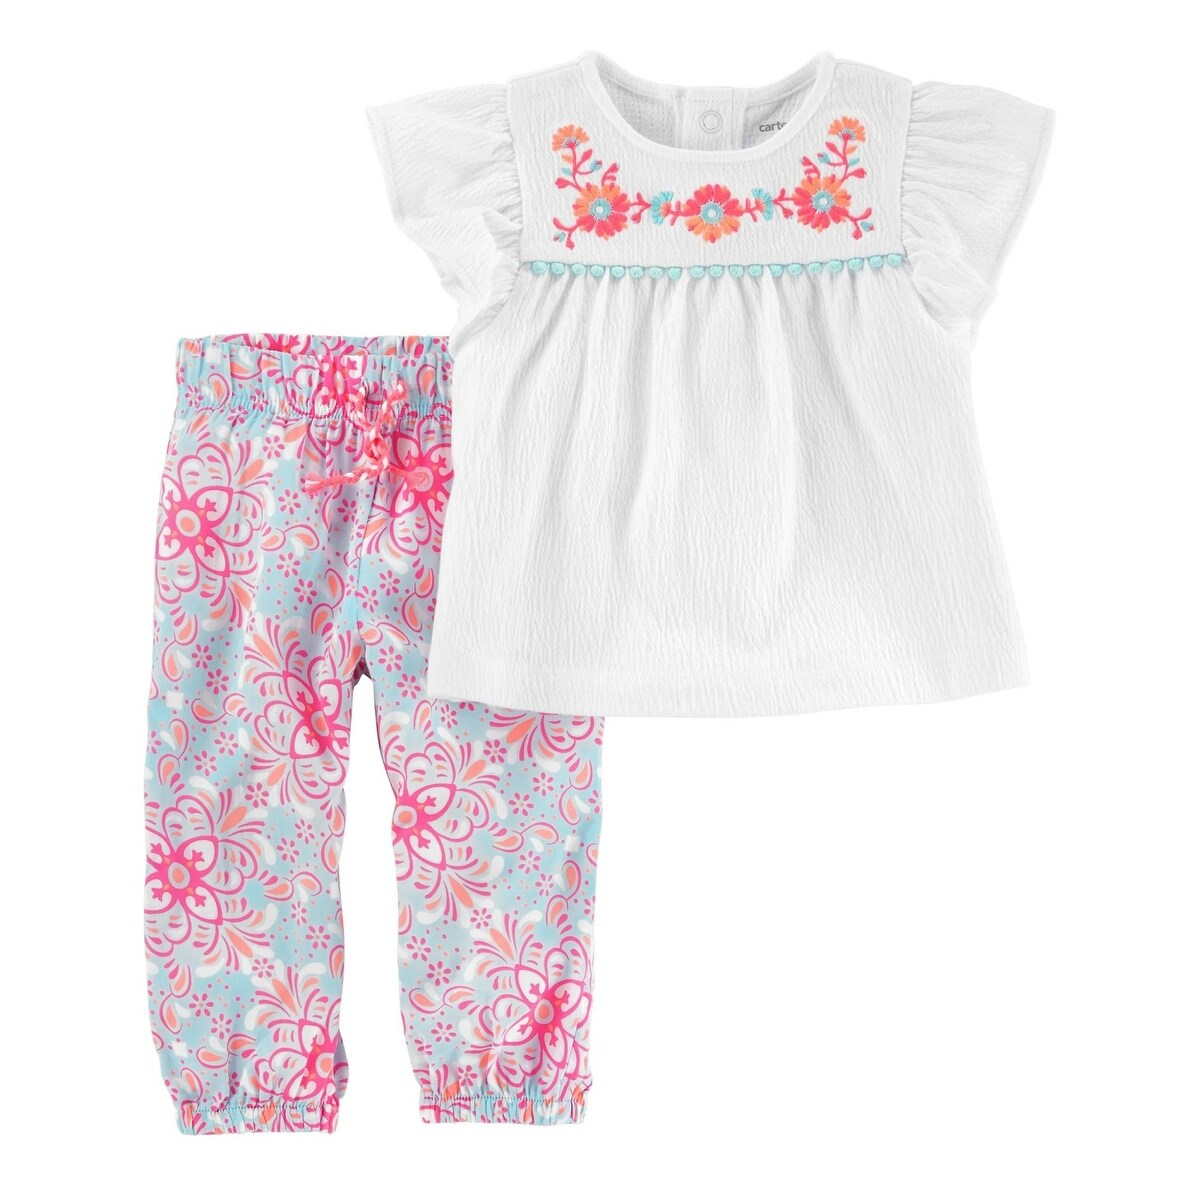 Shop Carter S Baby Girls 2 Piece Embroidered Top Floral Poplin